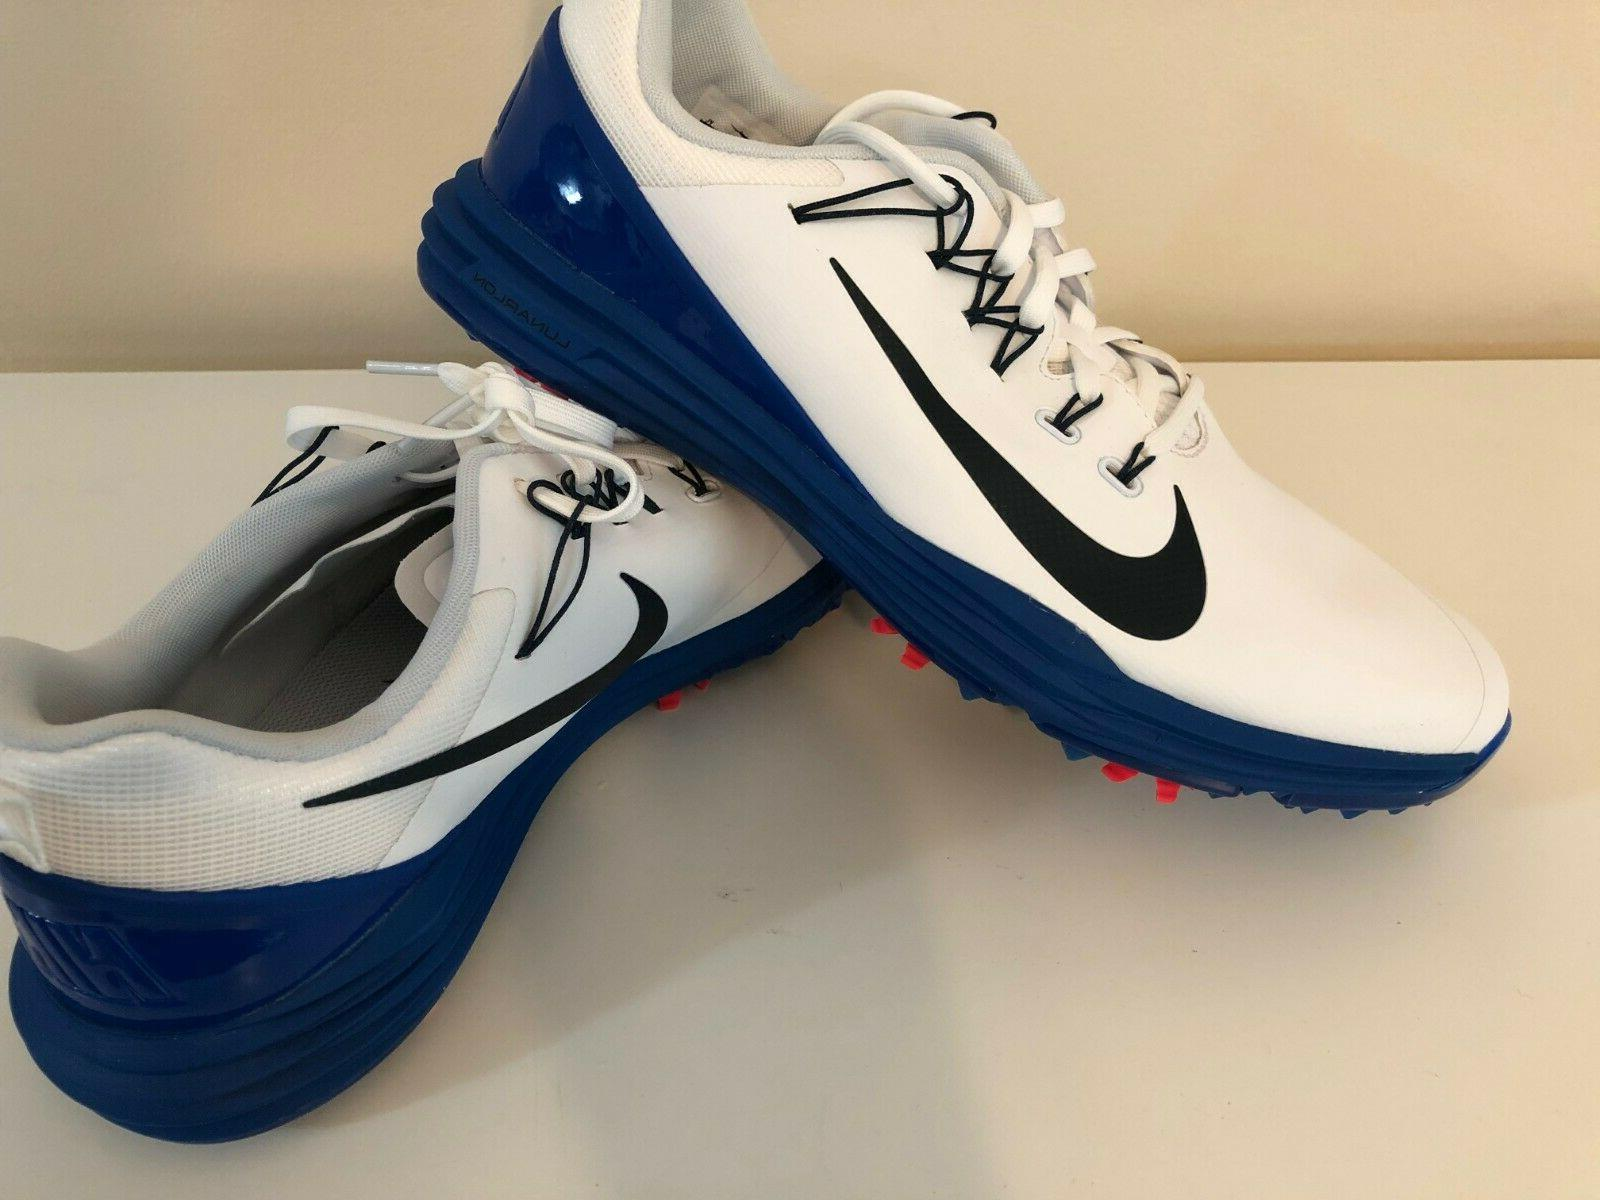 lunar command 2 golf shoes cleats white